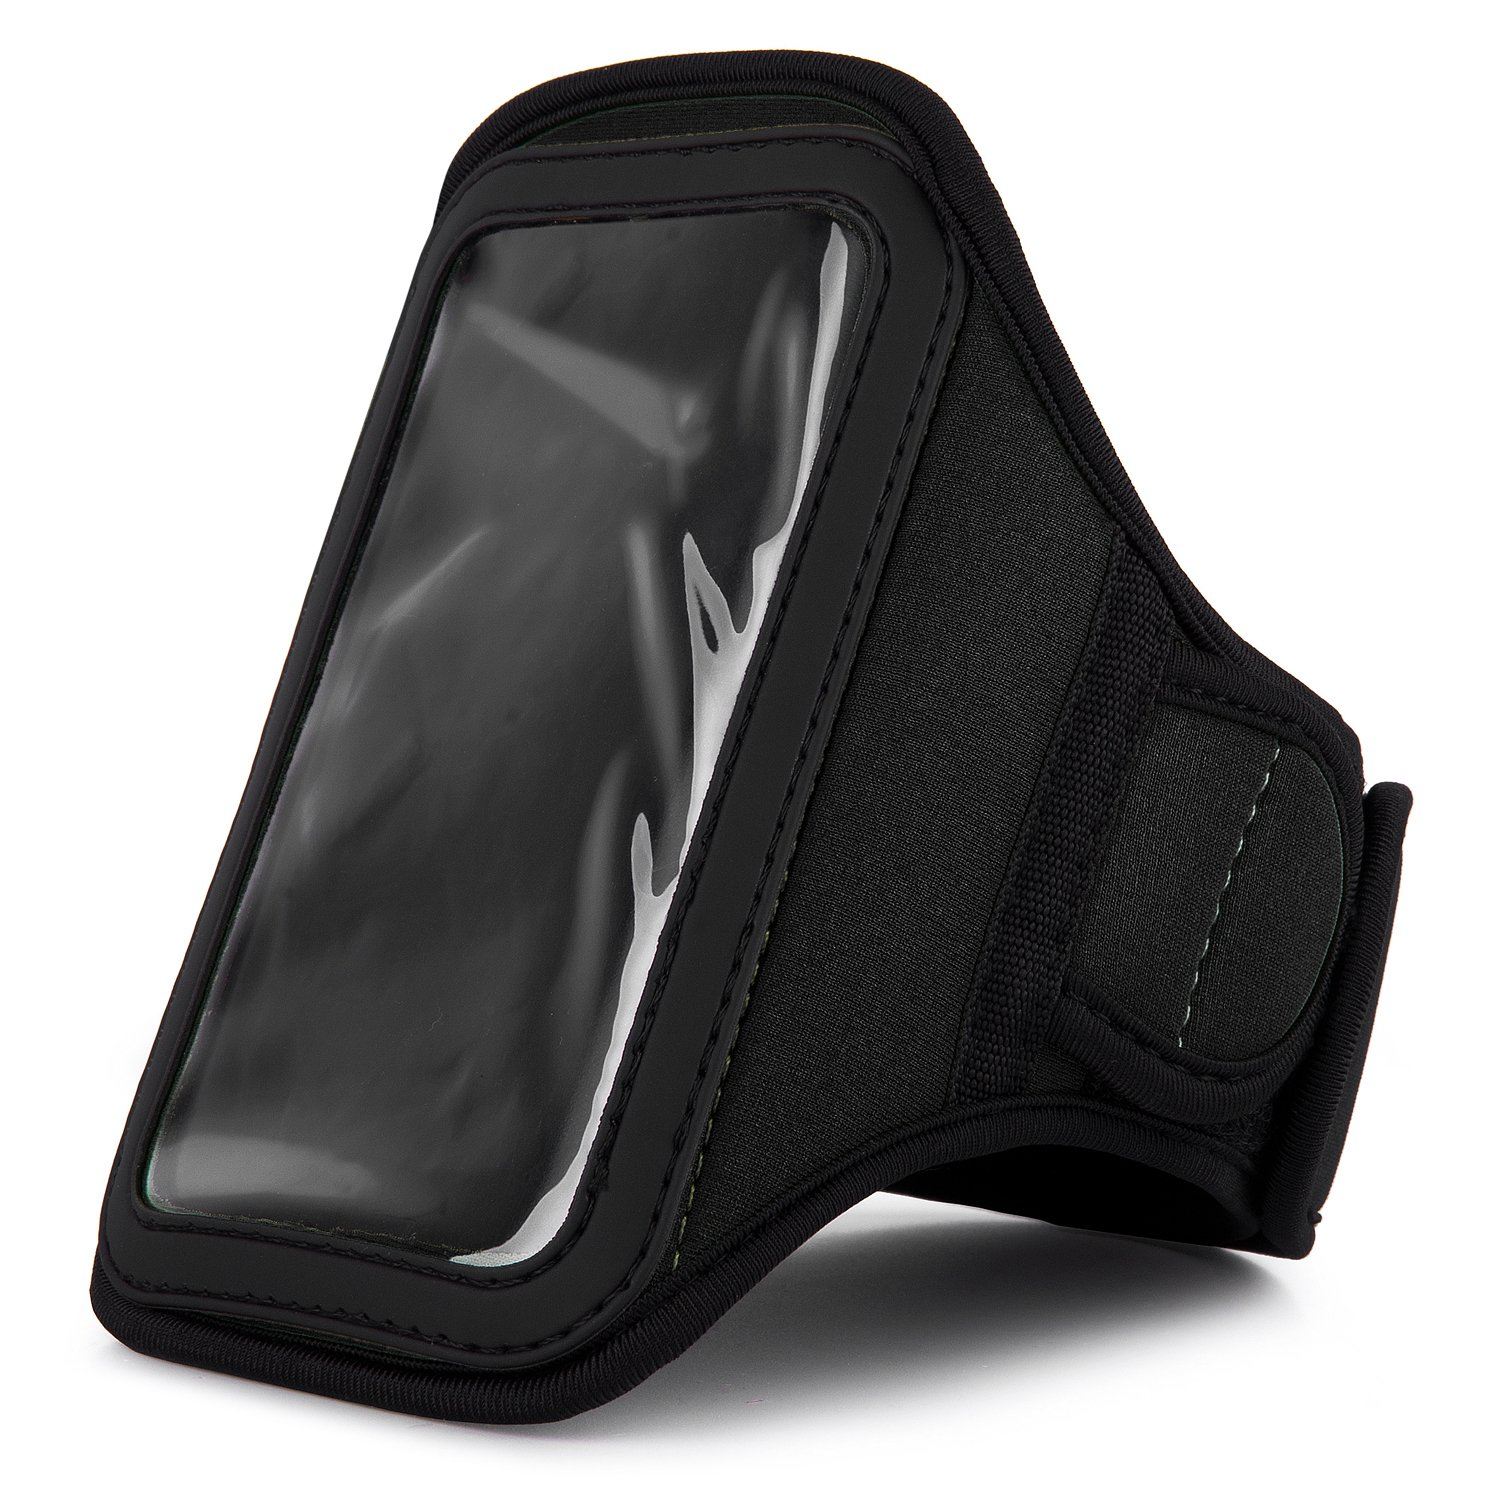 VanGoddy Hands-free Black Armband for Samsung Galaxy A3 , A5 Android / Z1 , Z2 Tizen